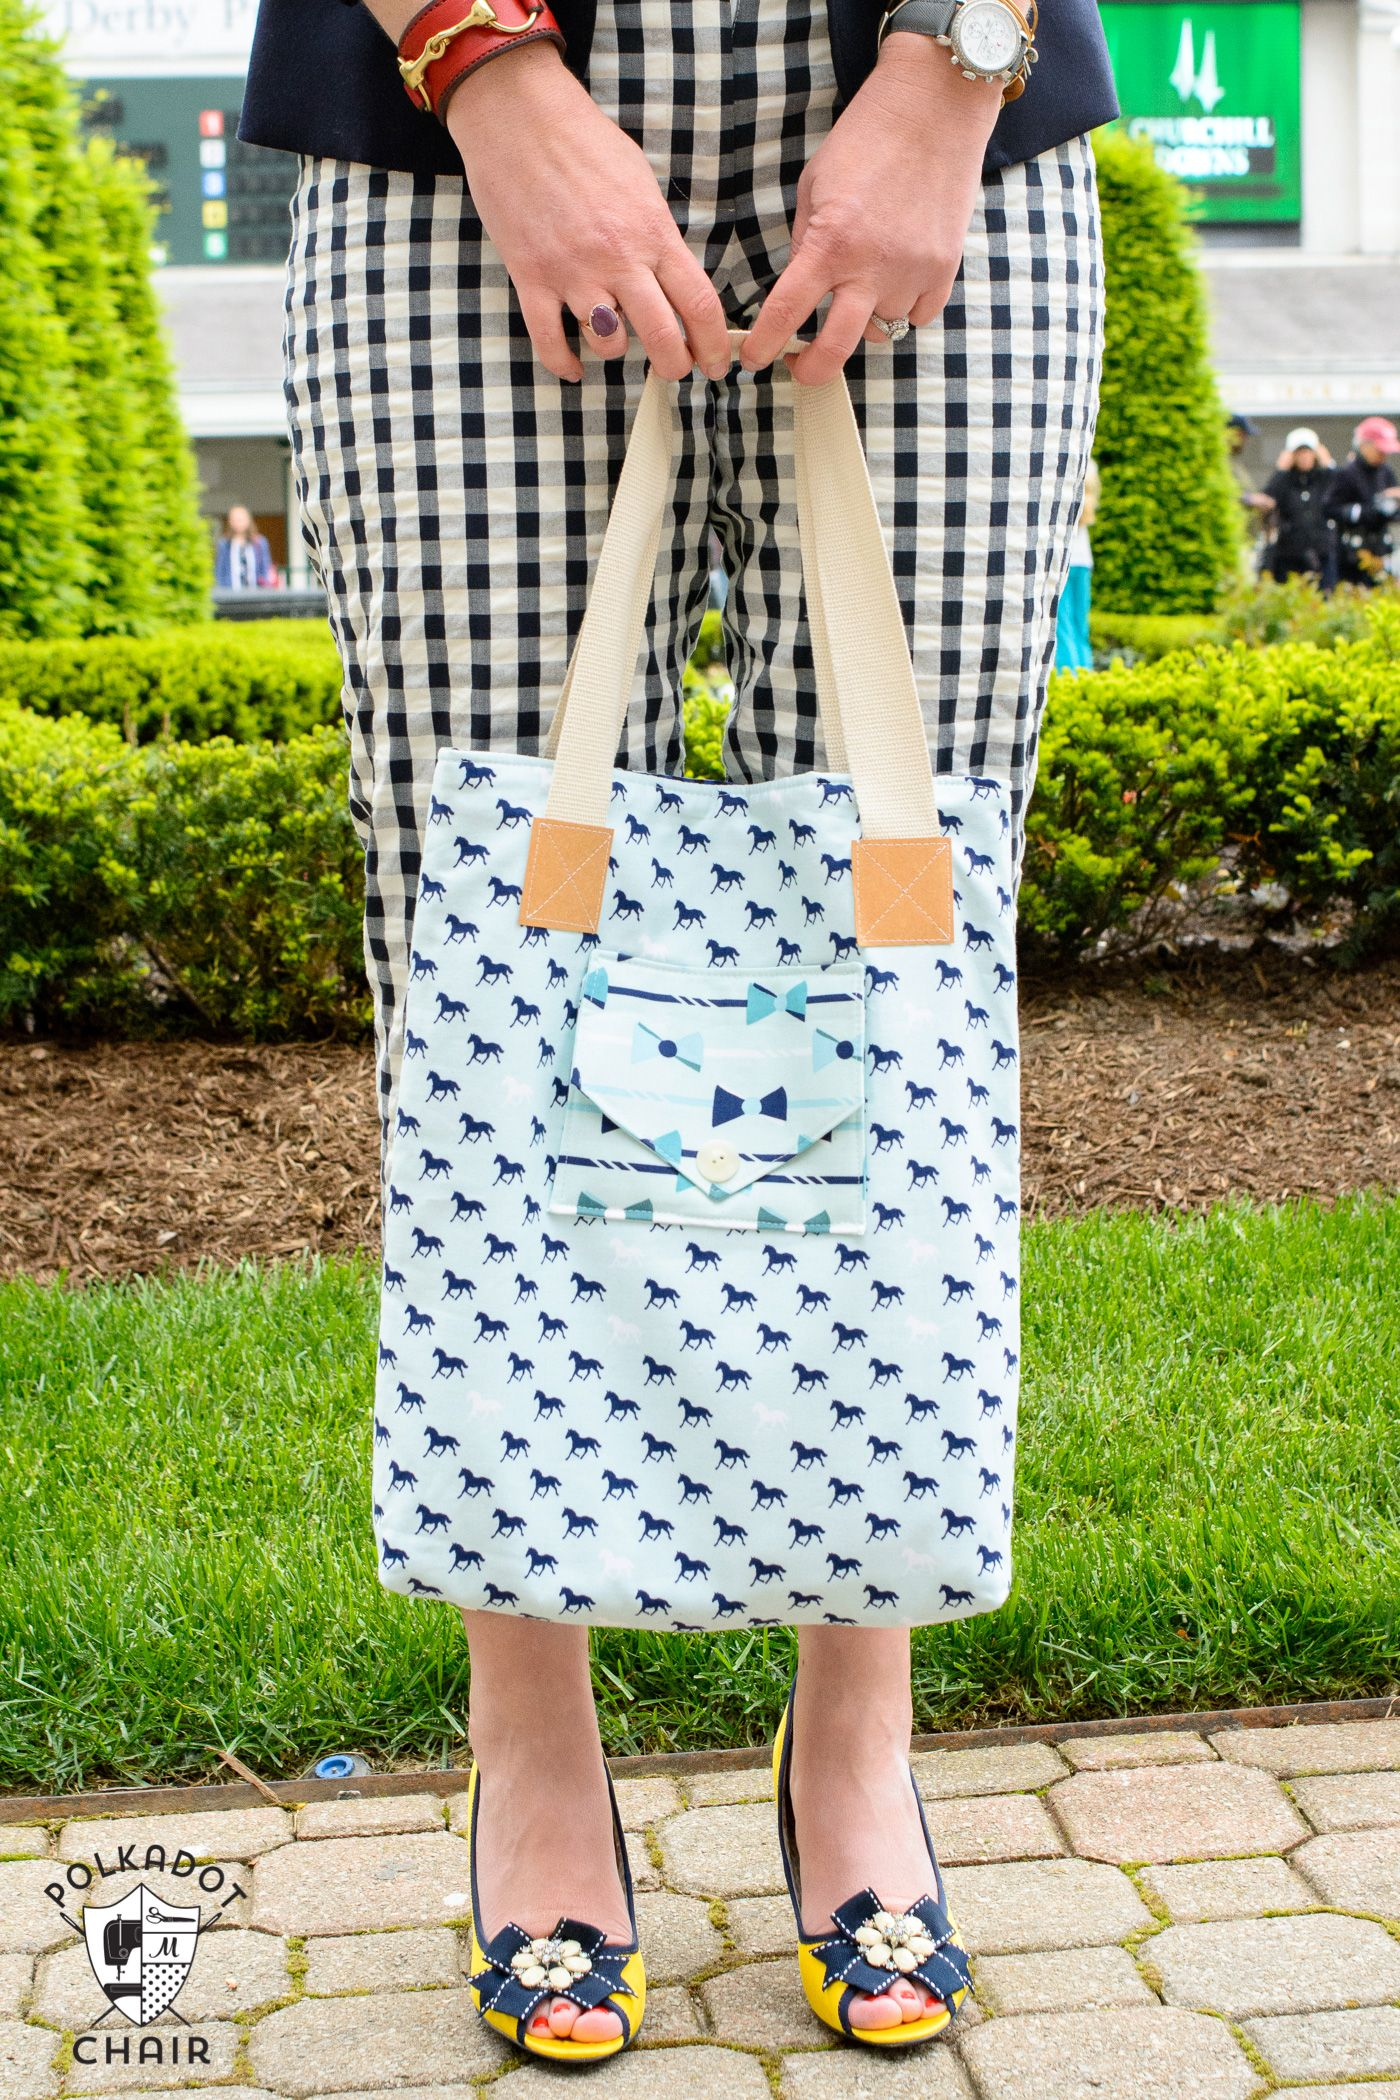 A New Tote Bag Sewing Pattern - The Polka Dot Chair